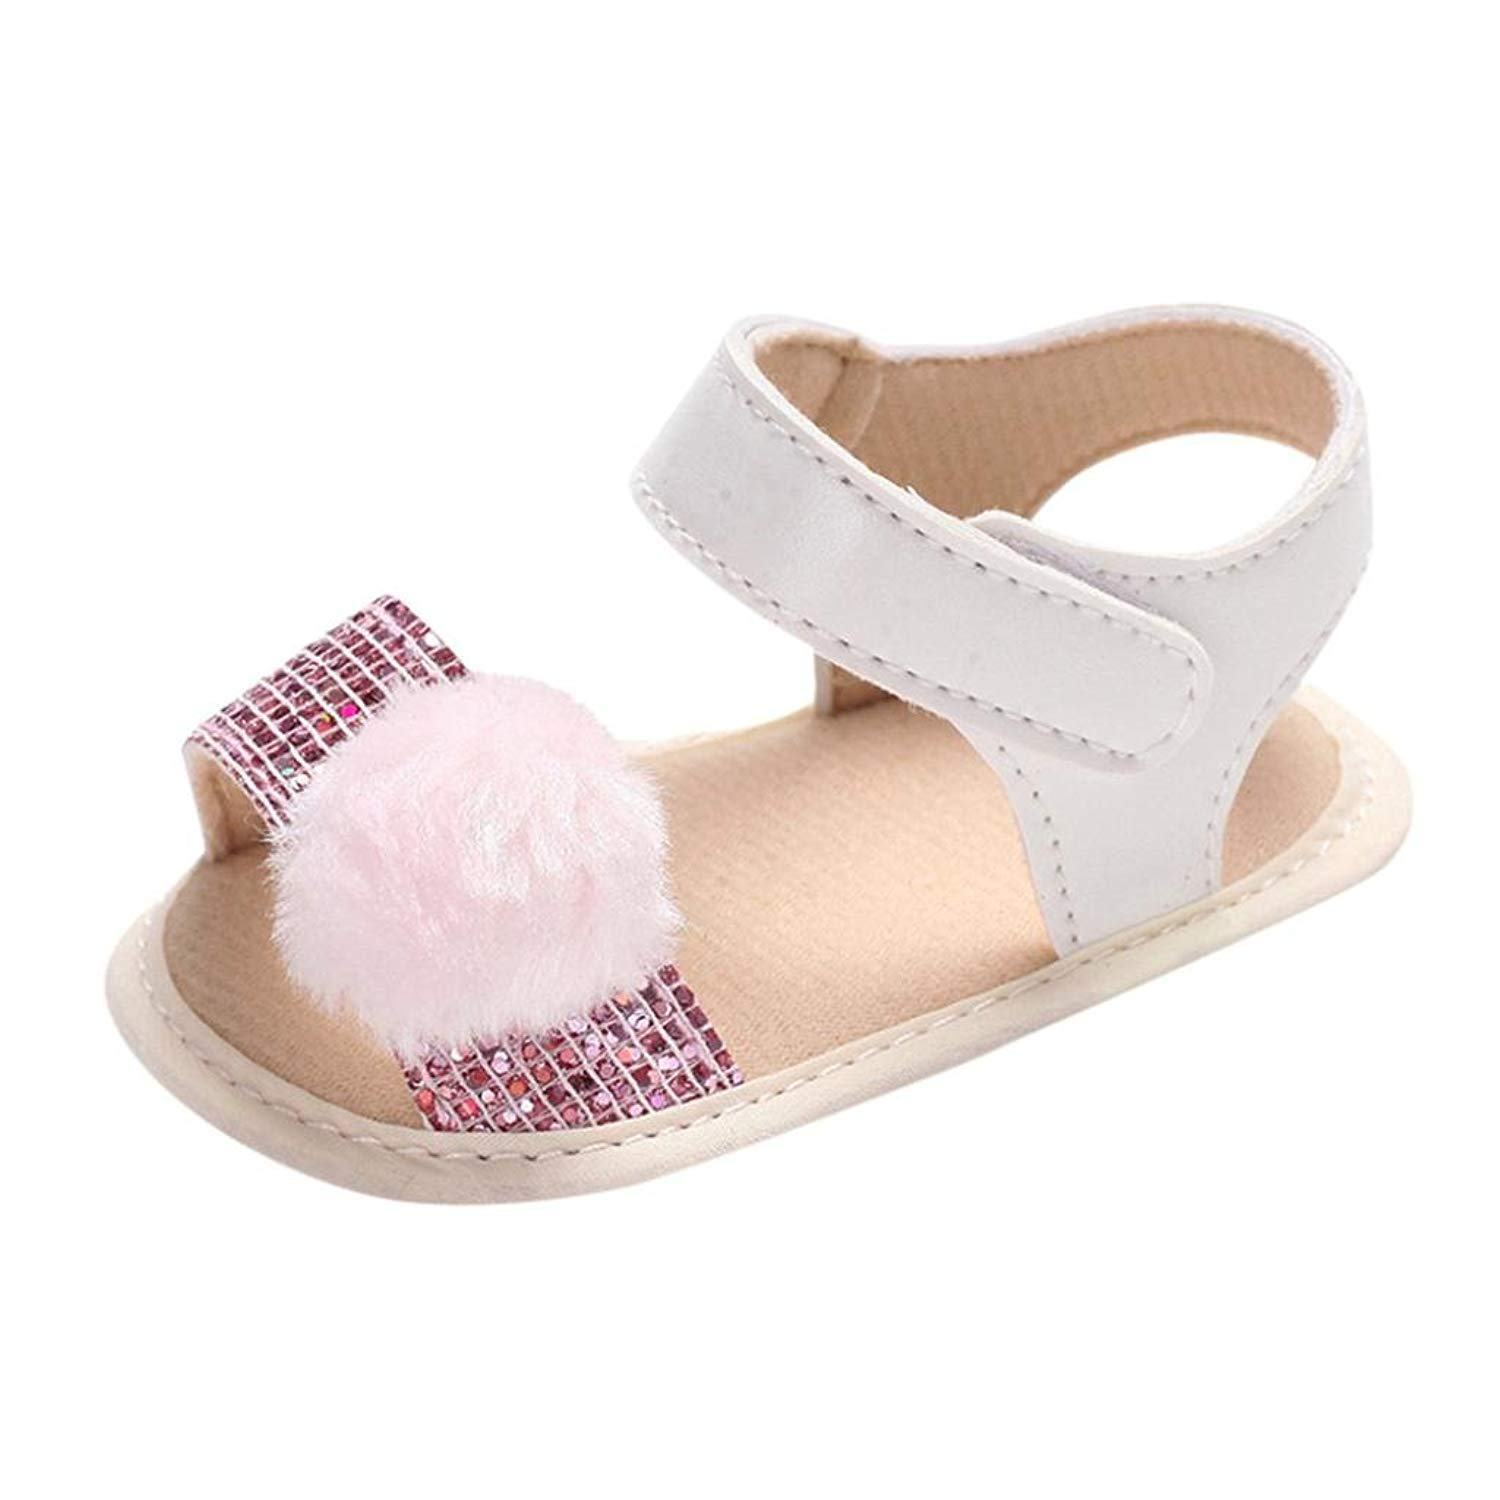 5864e6312f4 Get Quotations · WOCACHI Baby Girls Shoes Infant Baby Girls Ball Shoes Soft  Sequins Crib Anti-Slip Shoes